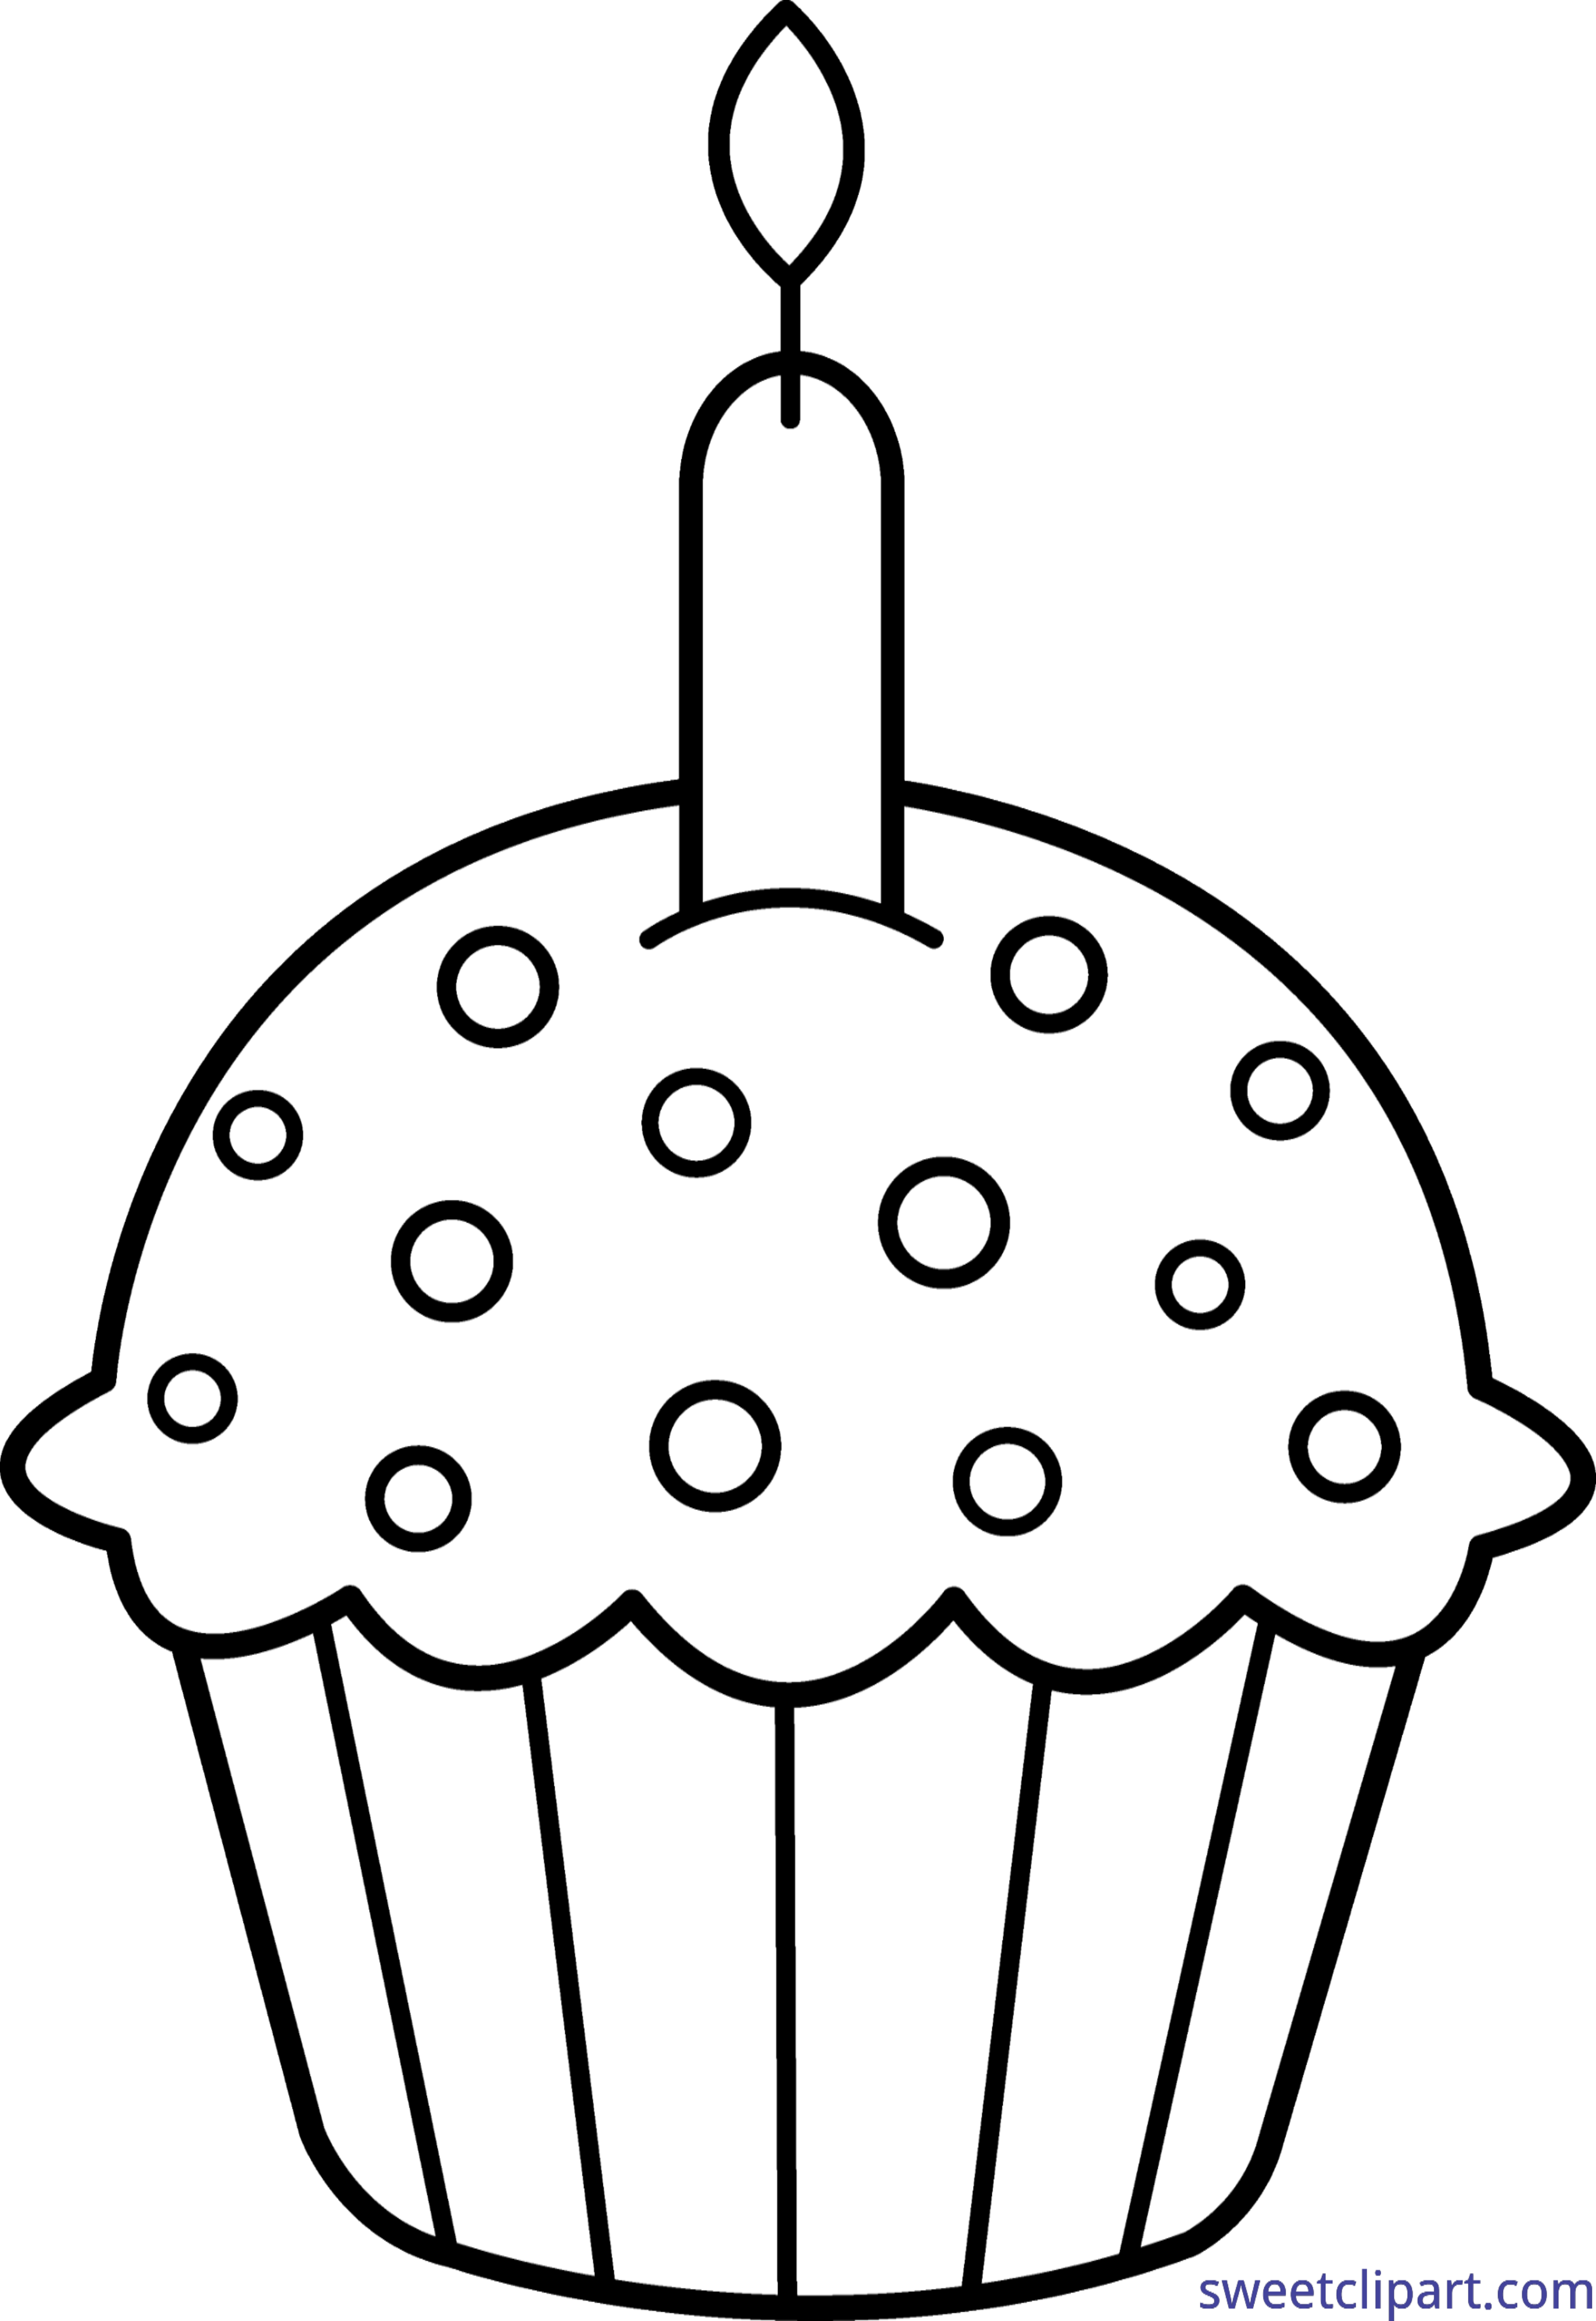 Birthday Cupcake Coloring Page Clip Art - Sweet Clip Art